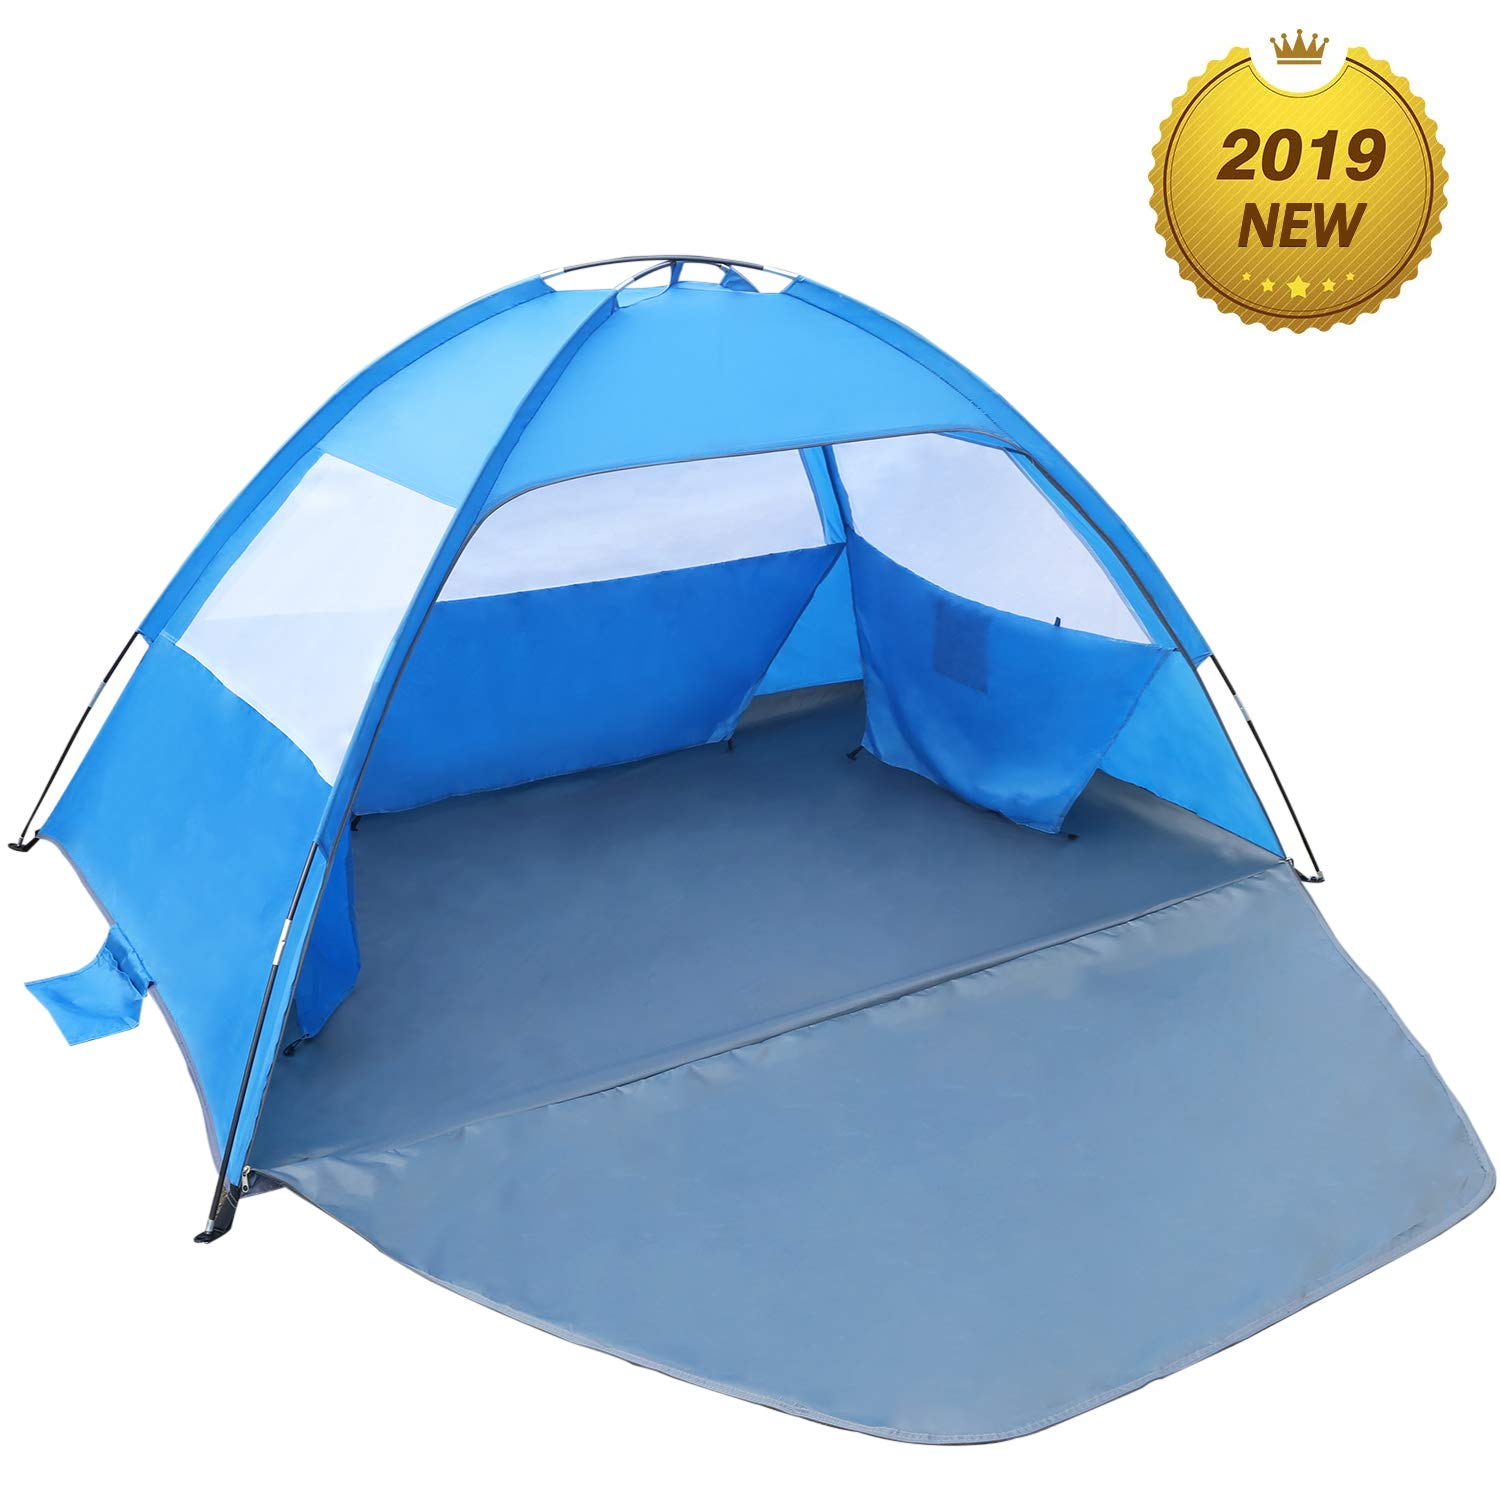 Venustas Beach Tent Beach Umbrella Outdoor Sun Shelter Canopy Cabana UPF 50+ Sun Shade Easy Set Up 3-4 Person, Lightweight and Easy to Carry by Venustas